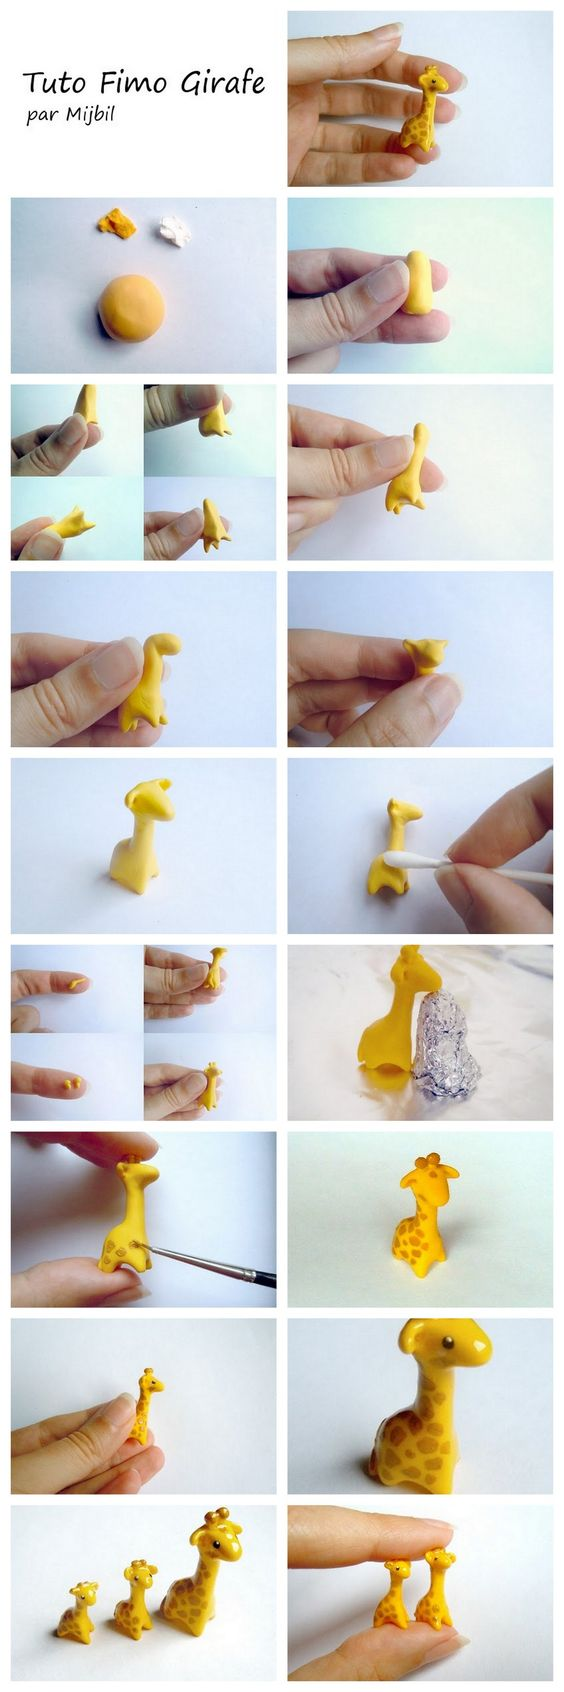 Fimo or Polymer Clay Giraffe Tutorial: